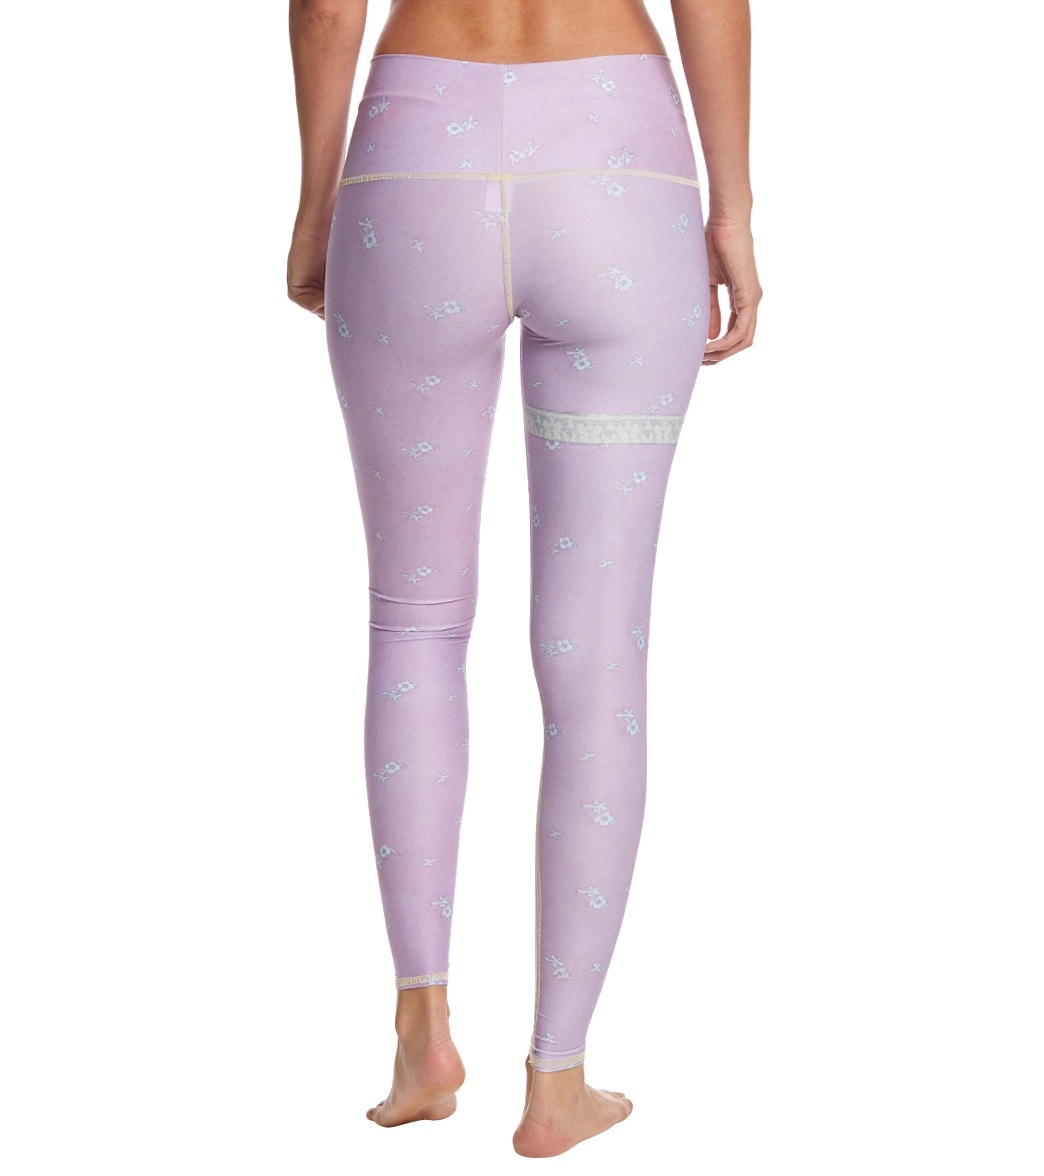 3d32525b02a646 Teeki Marry Me Purple Hot Yoga Pants at YogaOutlet.com - Free Shipping